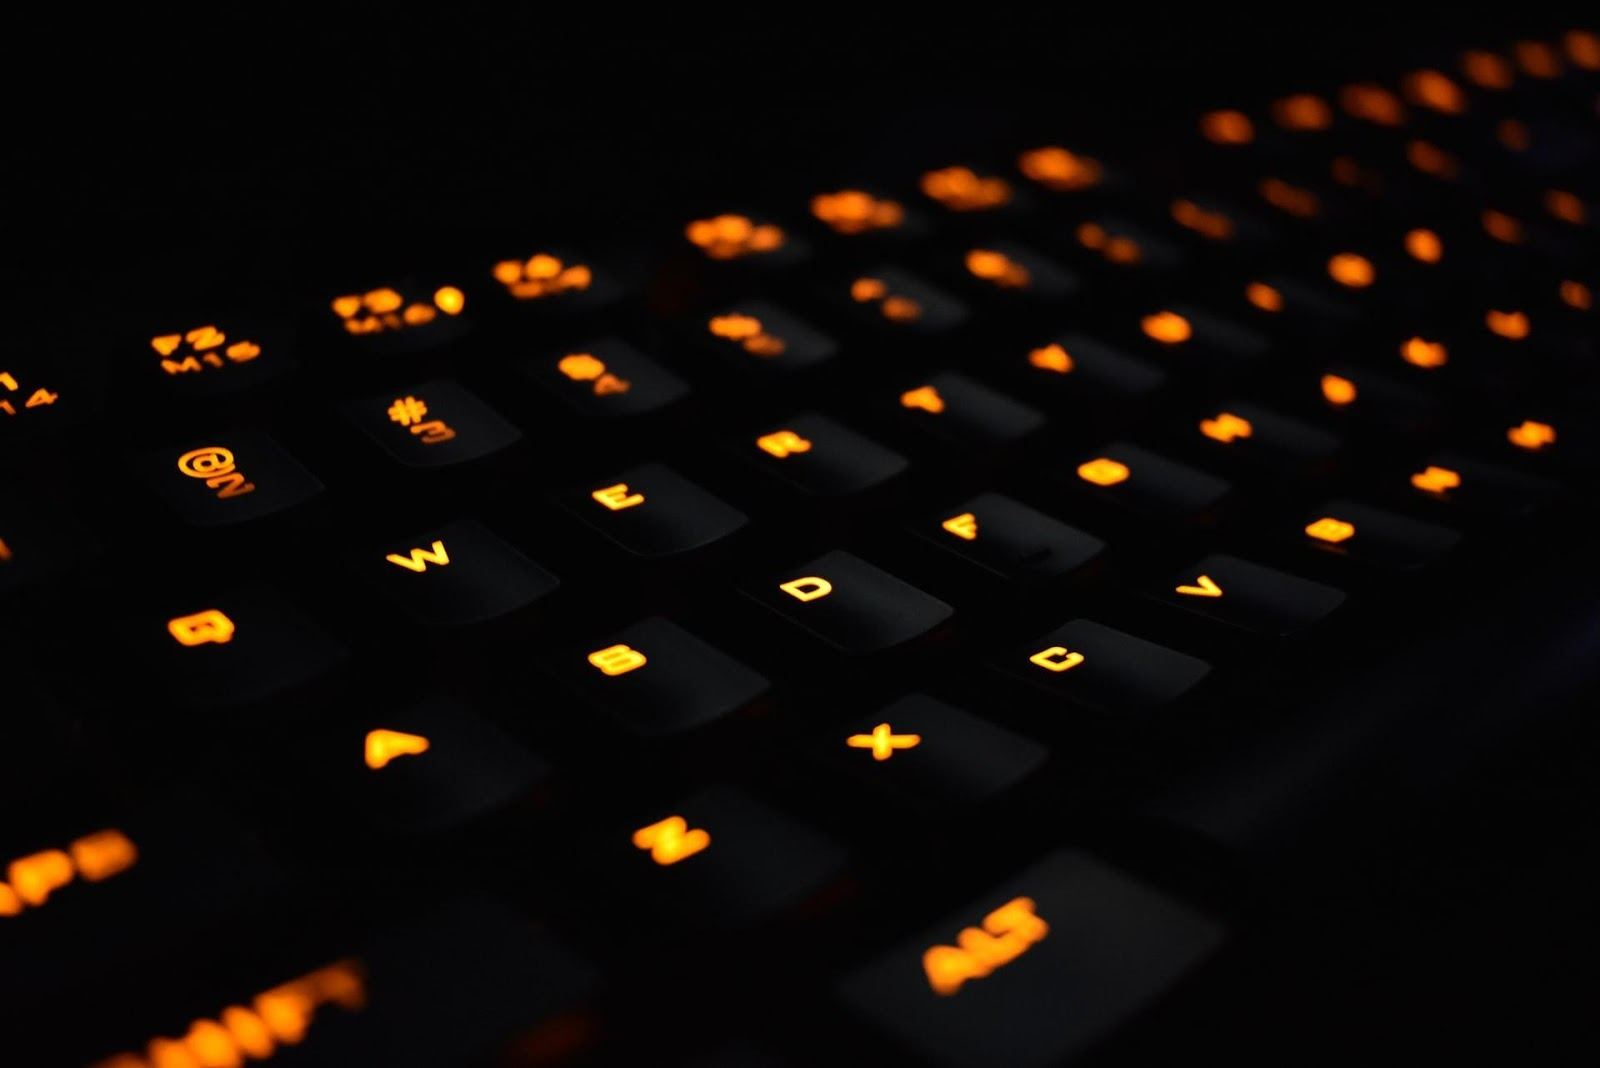 Best Gaming Keyboards for FPS Games